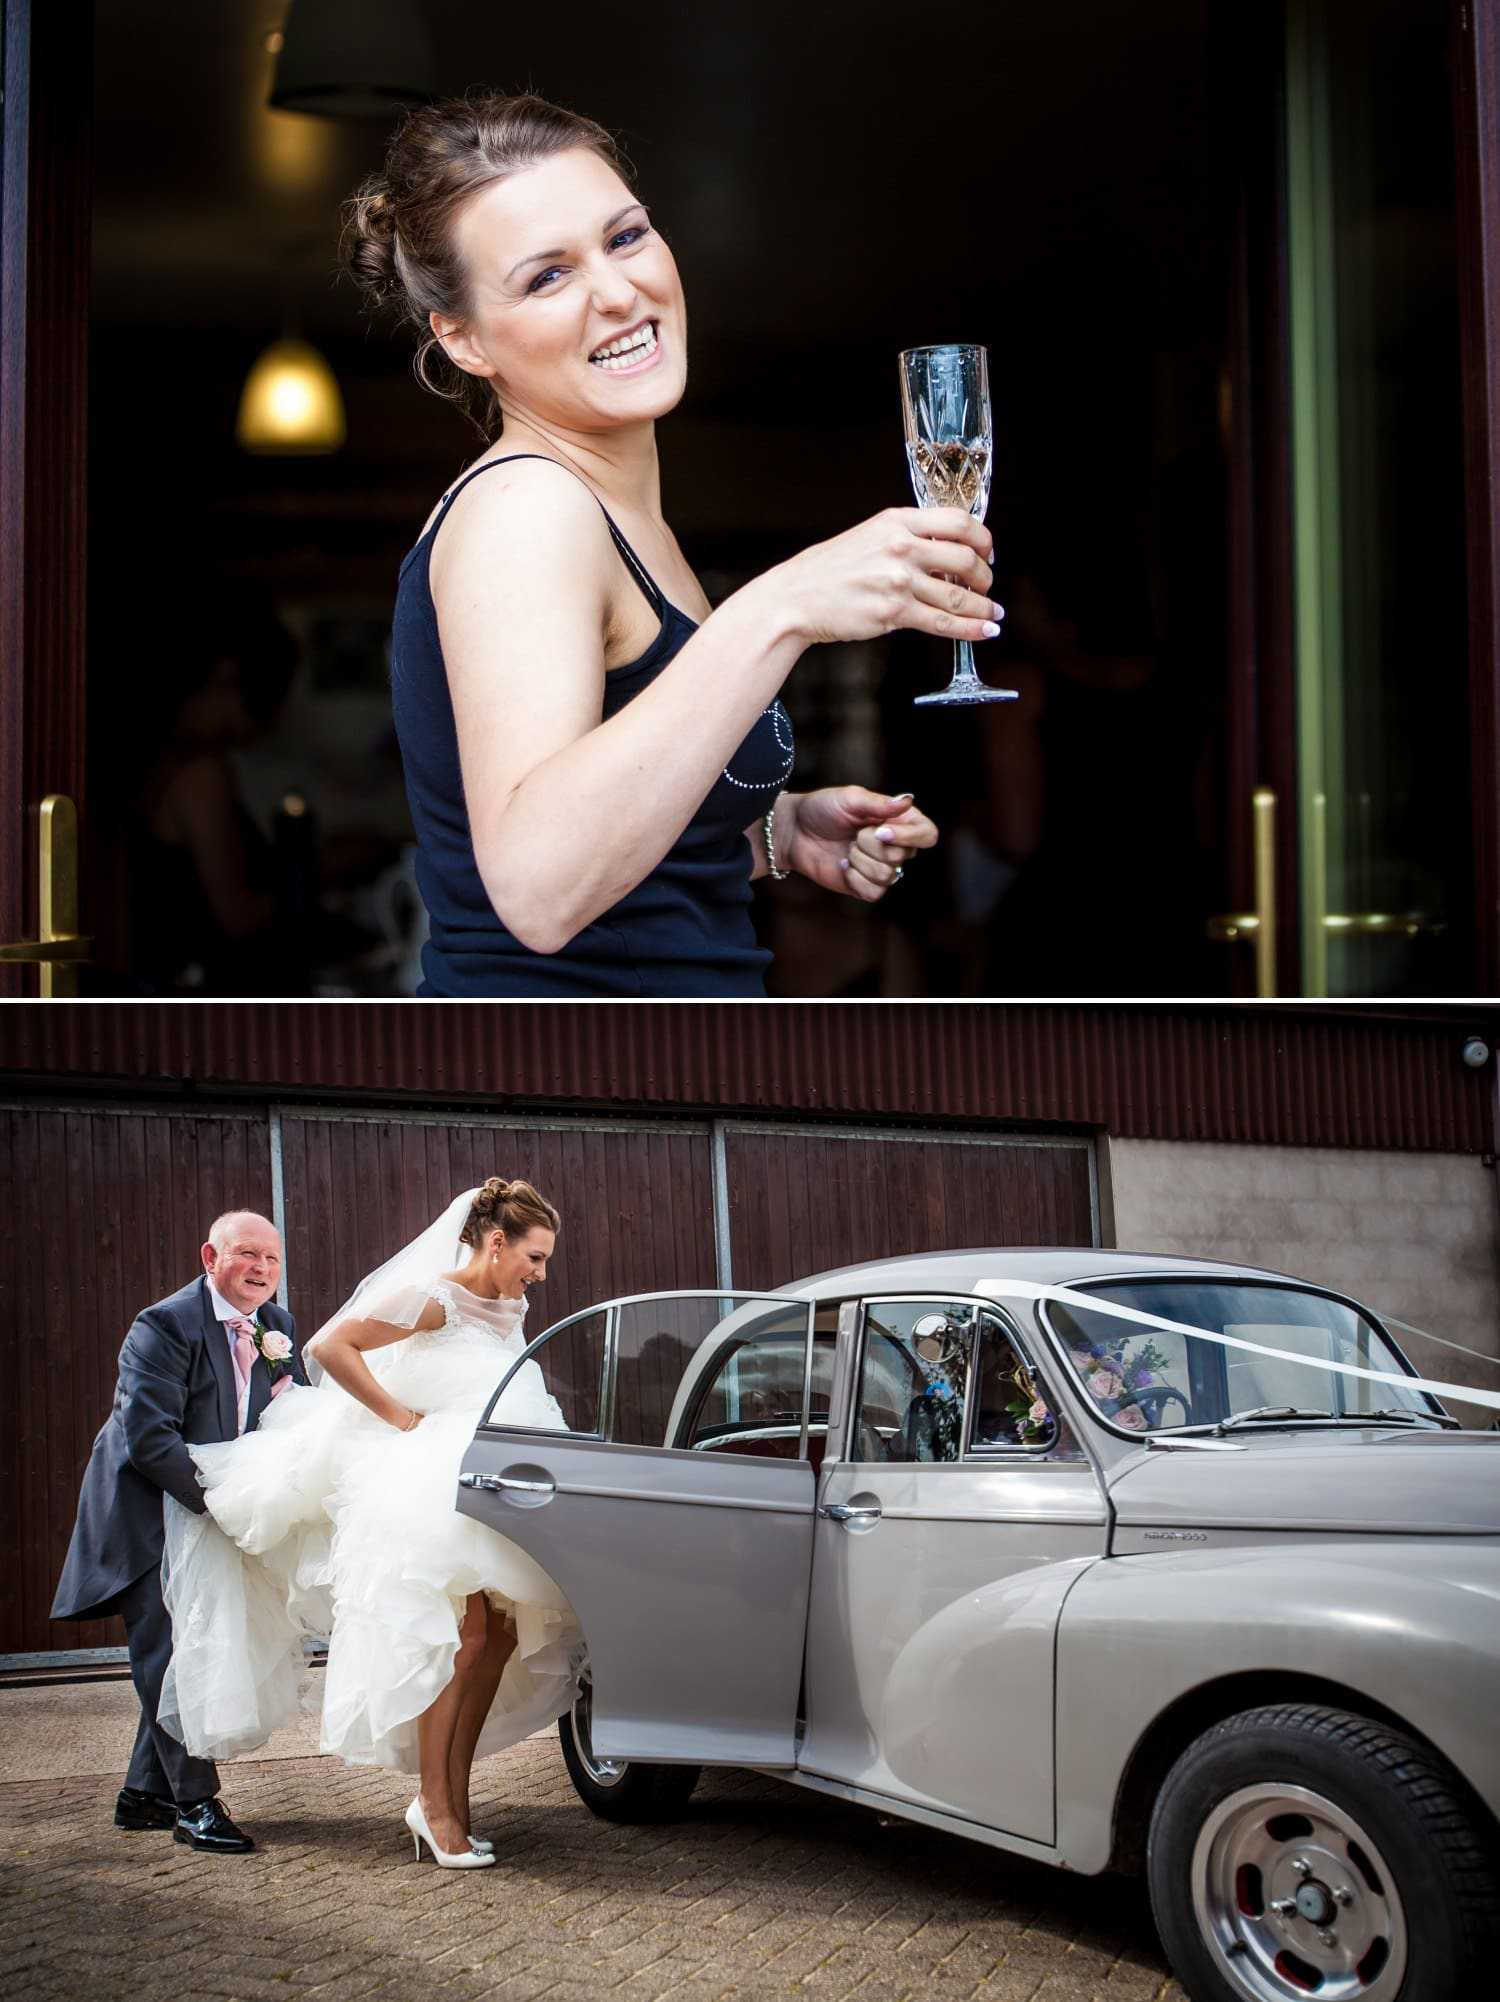 Wedding Photography bride getting into car in Wales